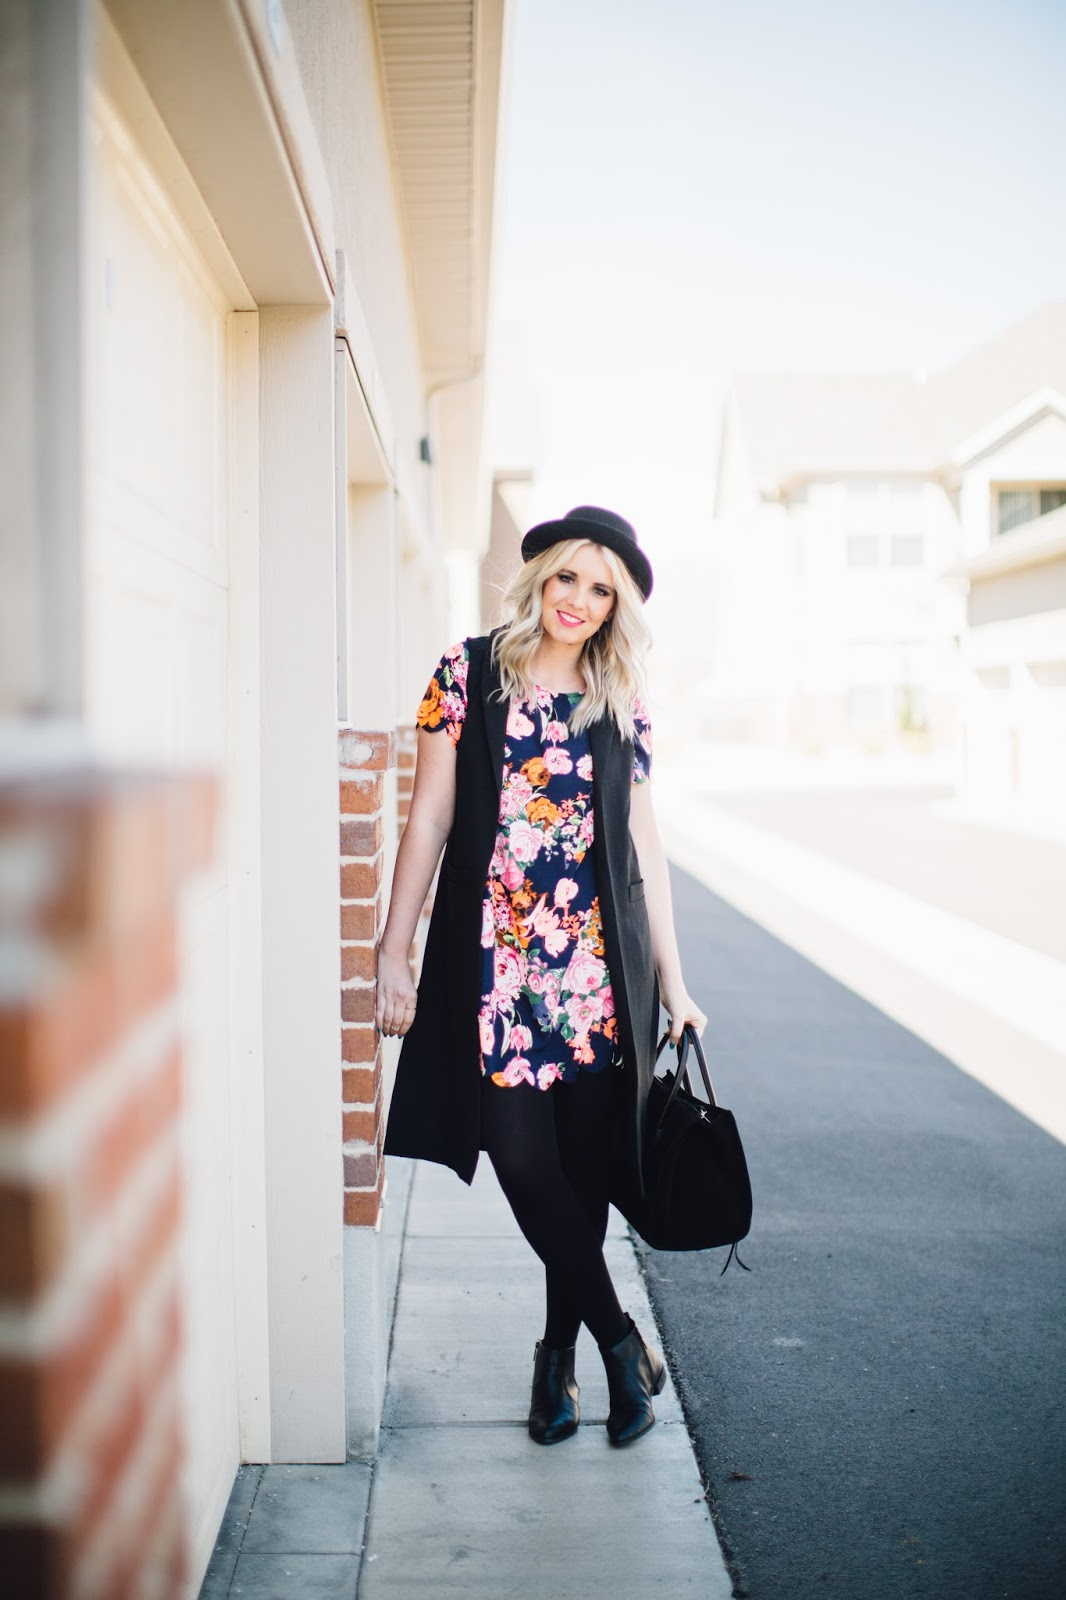 Floral dress, Obsessions Boutique, Spring outfit